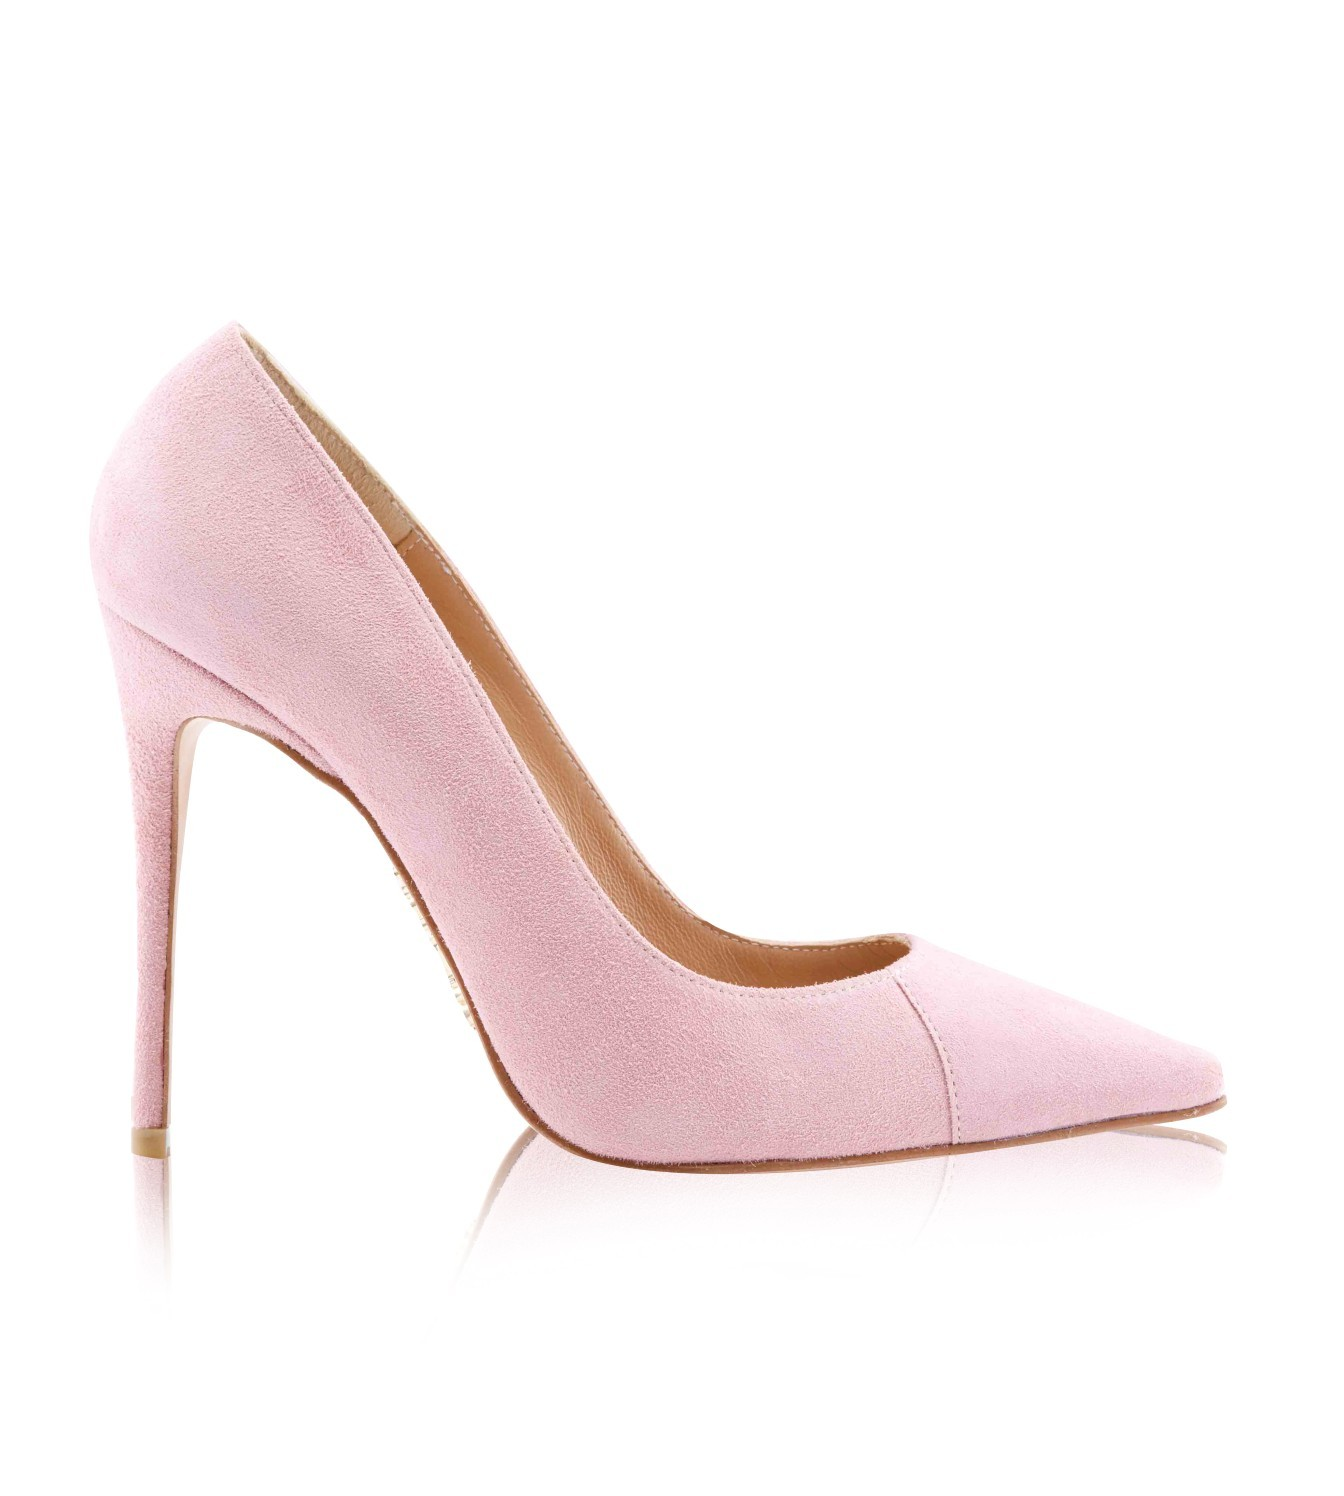 Shoes   PARIS  Suede Pink Patent Leather Pointy Toe Heels 5